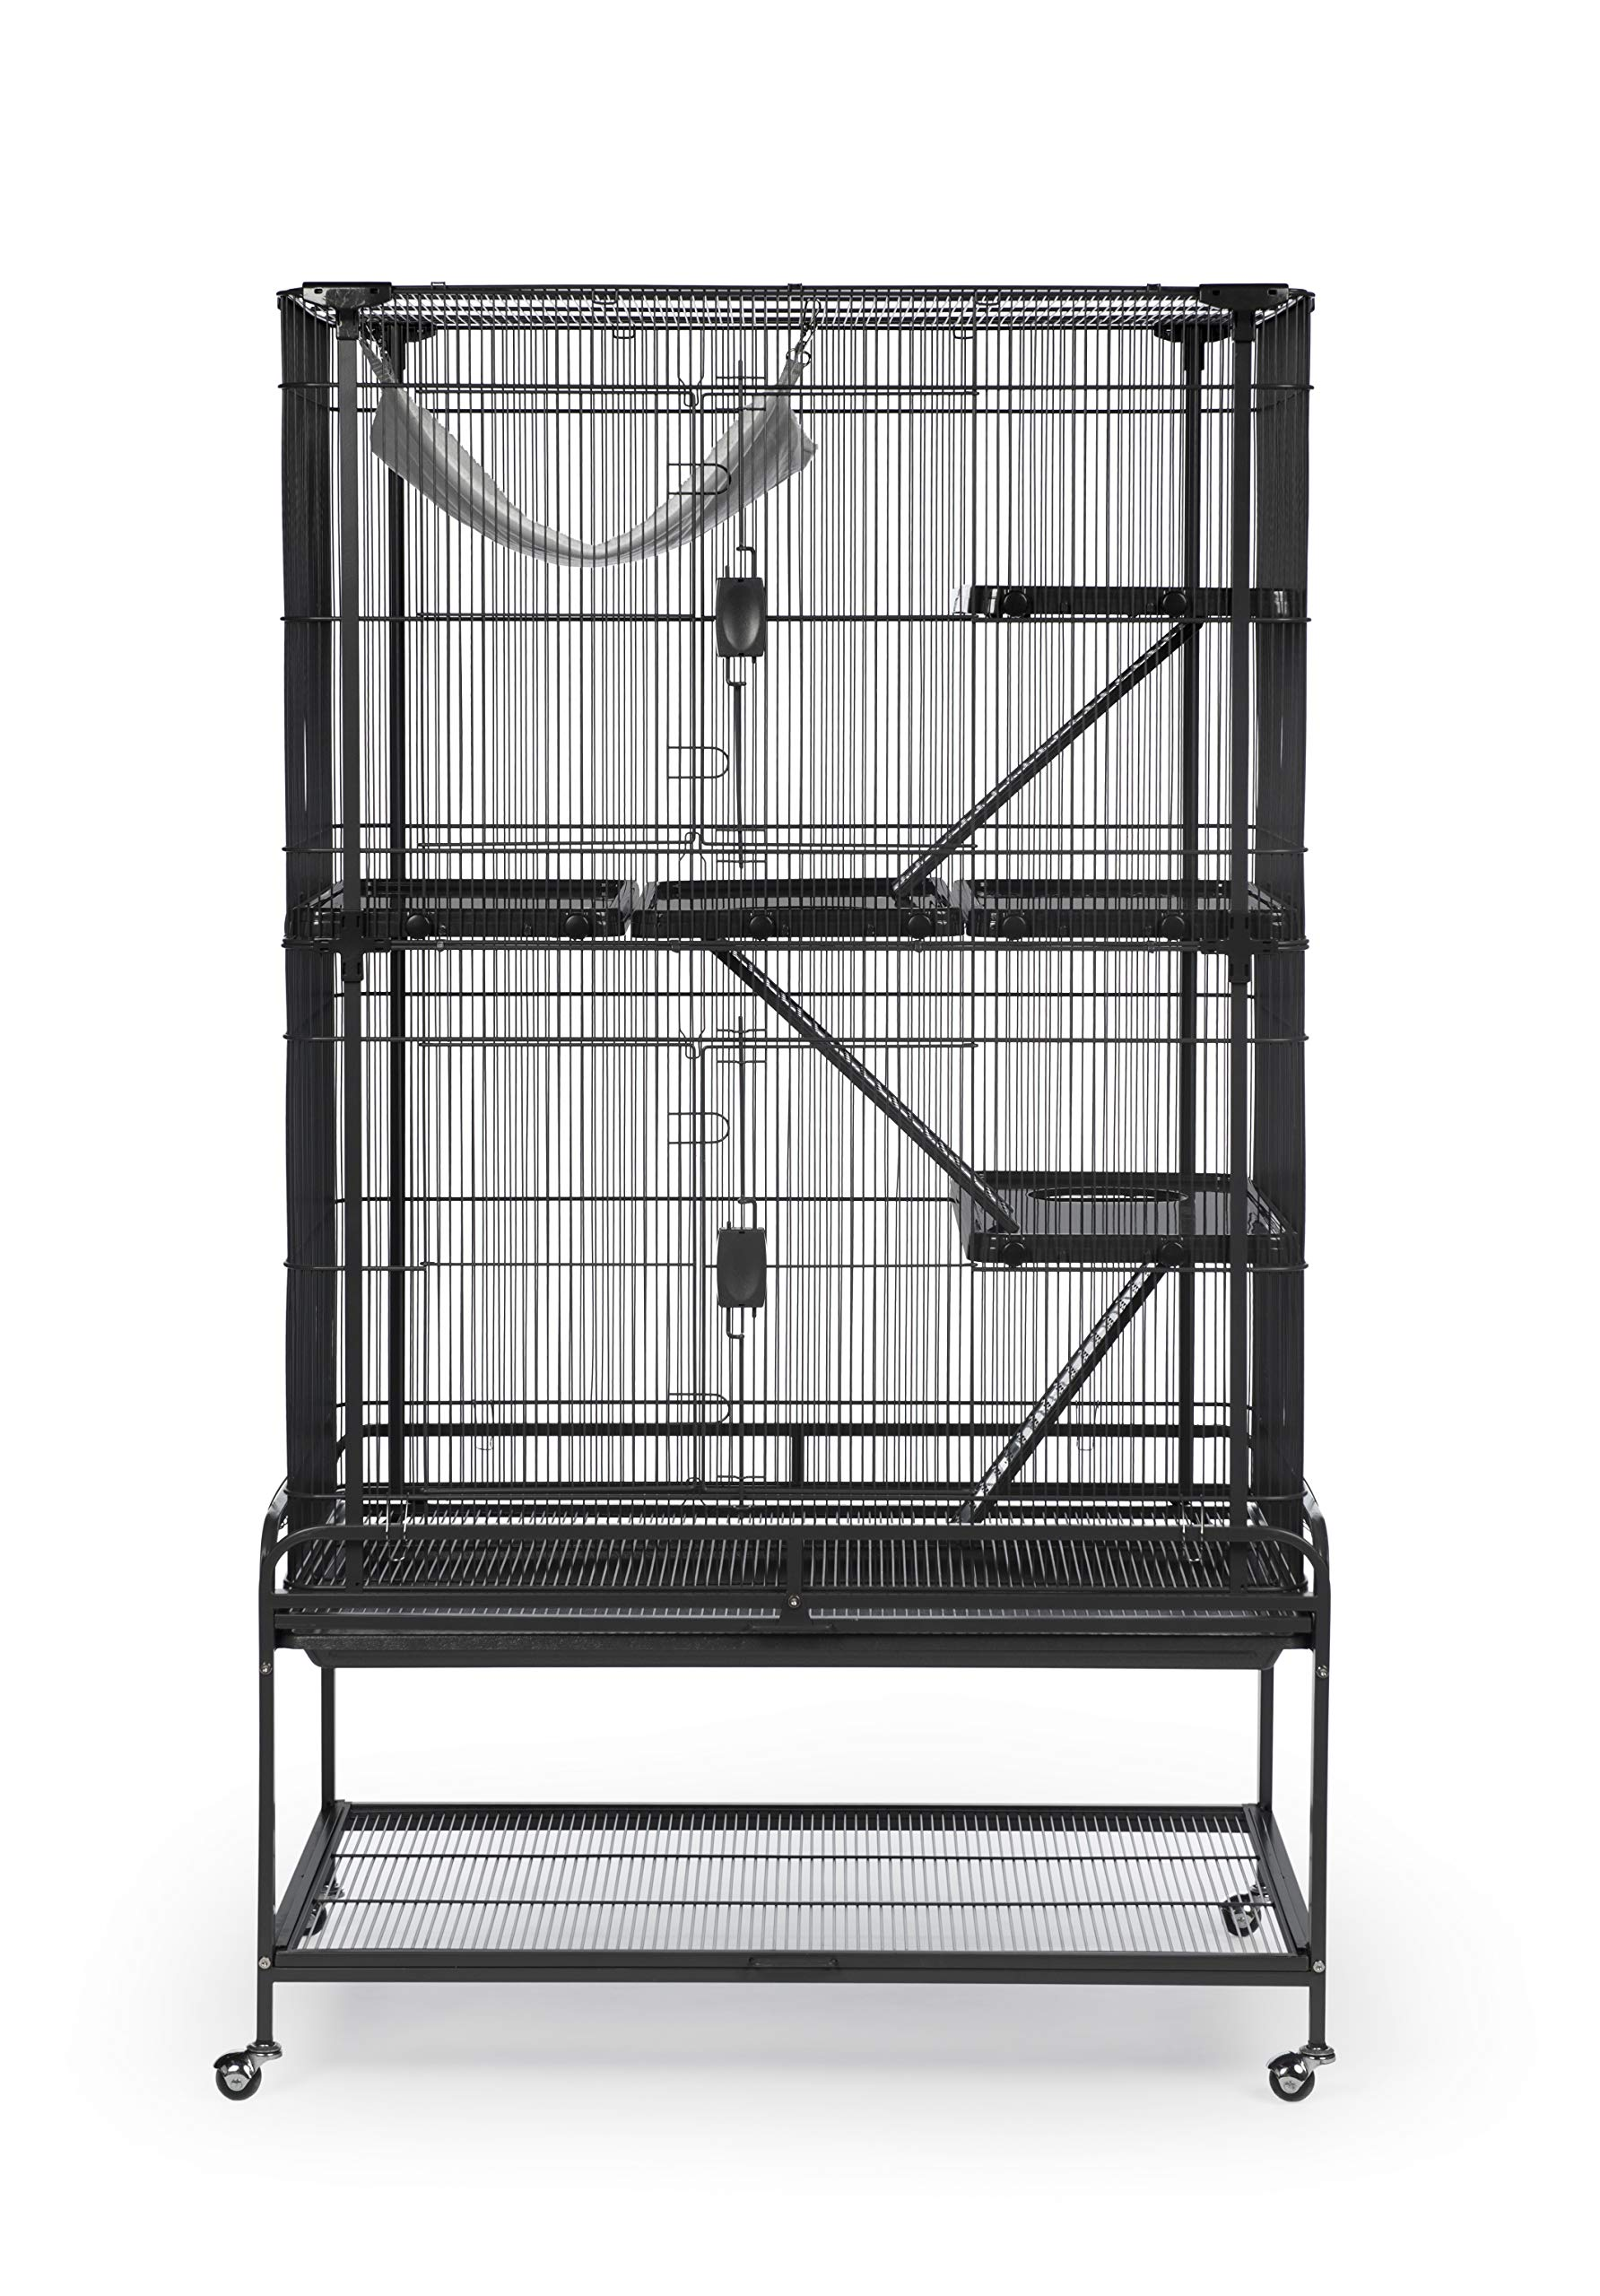 Prevue Pet Products Deluxe Critter Cage 484B, Black